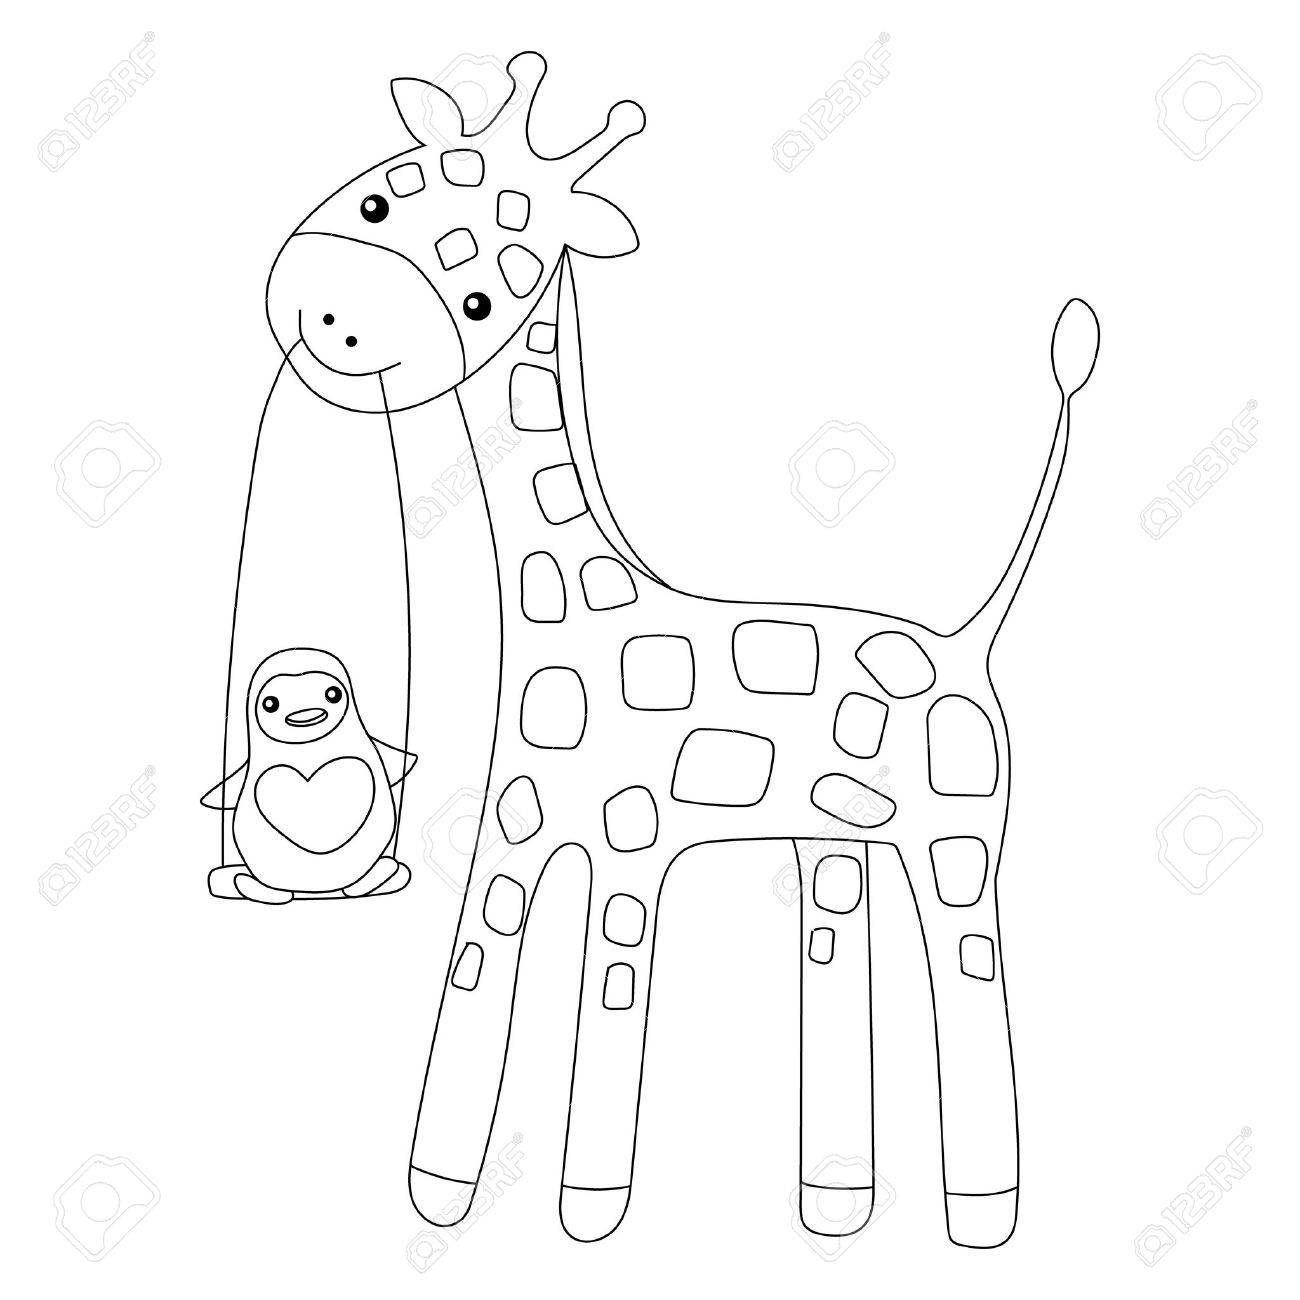 Coloring page little cute giraffe and his friend penguin isolated